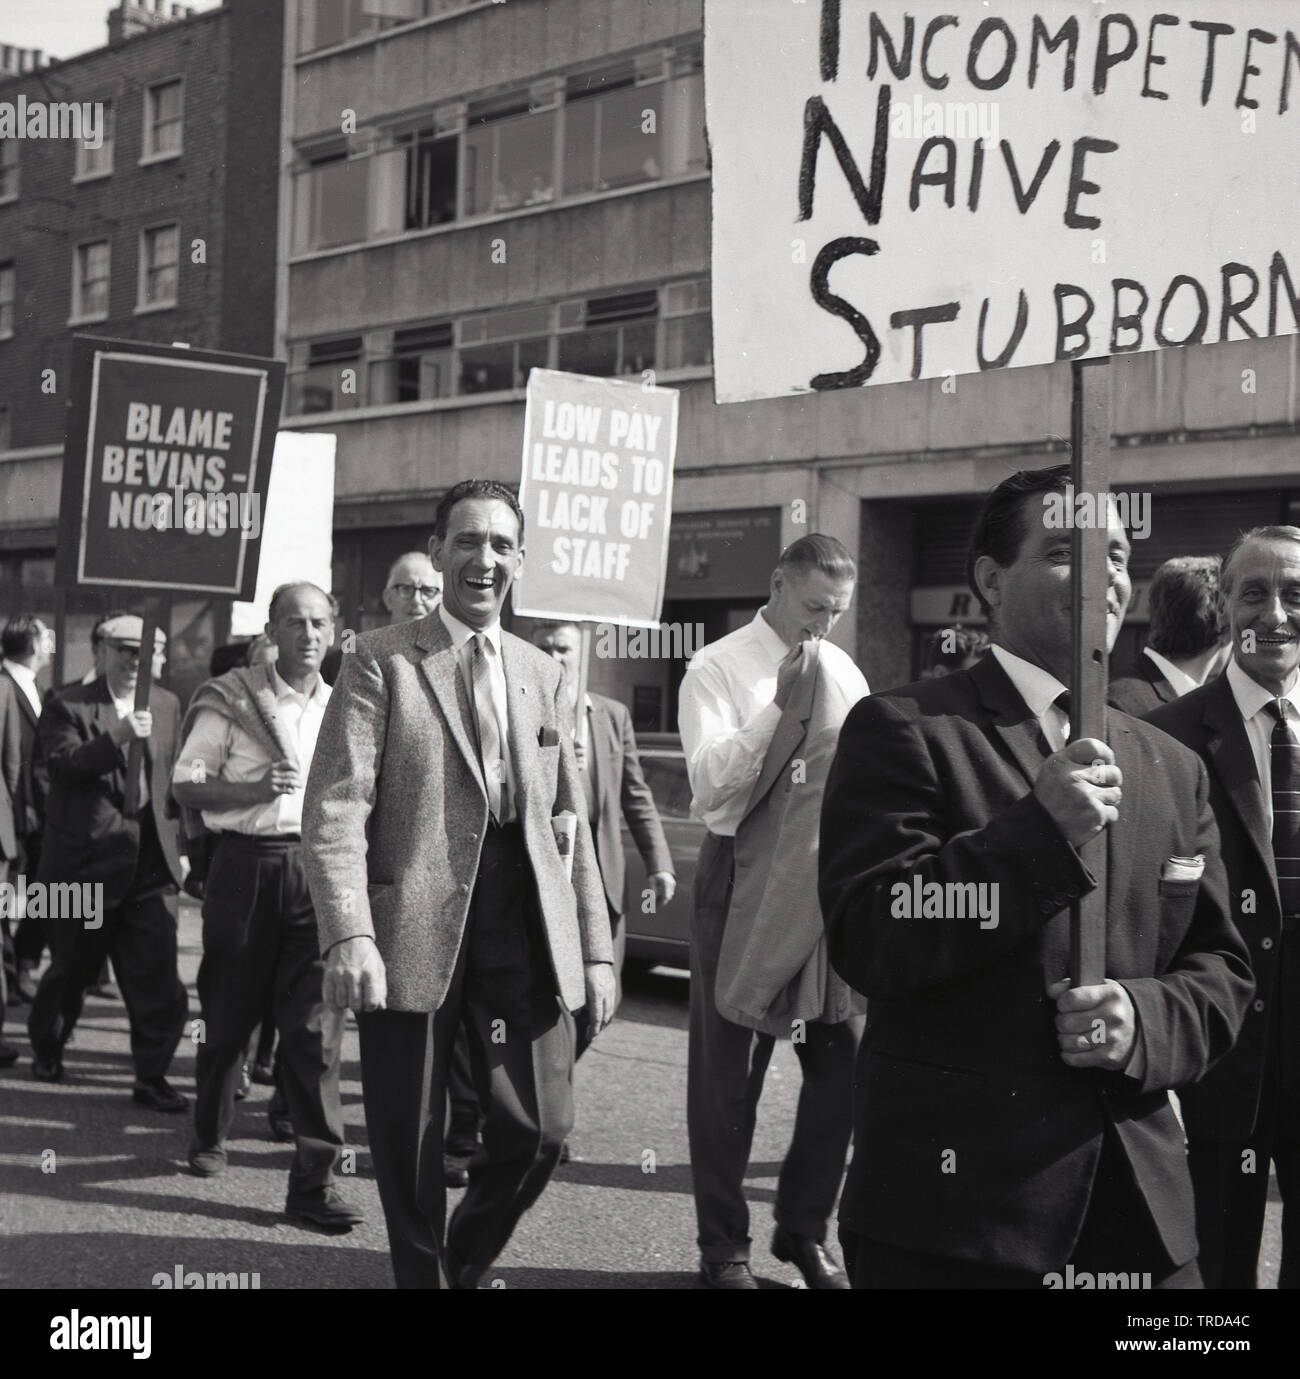 1960s, historical, striking Royal Mail postal workers walking through Central London holding banners, one saying...'Low Pay Leads To Lack of Staff'.  The postmenfrom the Kilburn branch were protesting about low wages and blaming the minster Bevin for the strike taking place, saying he and his minsters were 'Incompetent, Naive  and Stubborn. - Stock Image